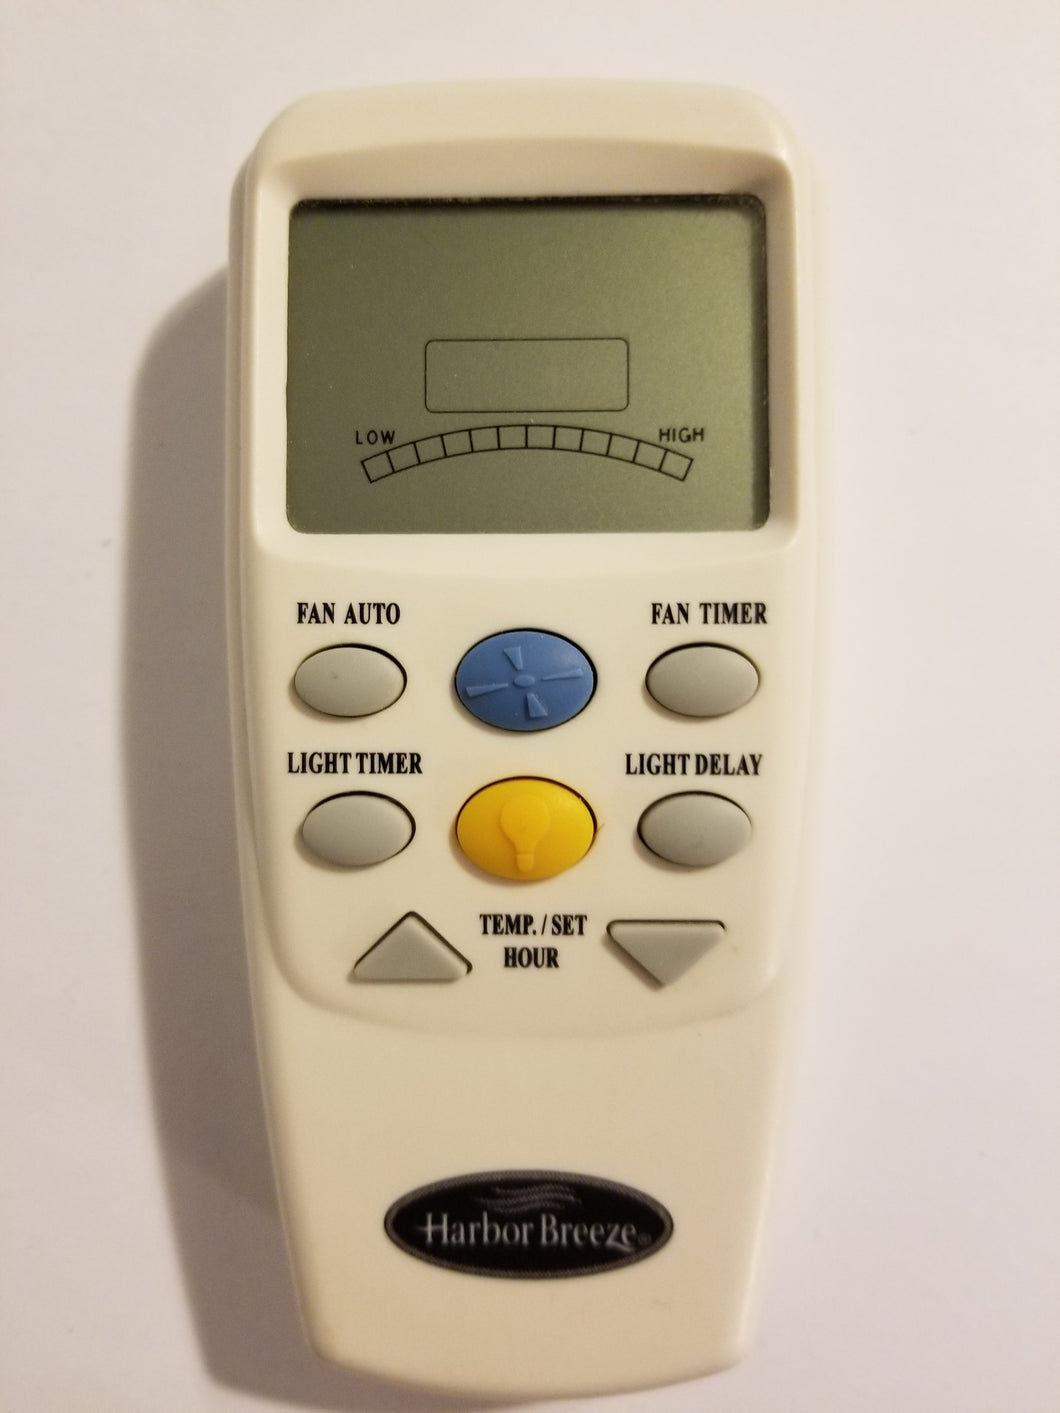 White Harbor Breeze ceiling fan and air conditioner remote control FCC ID: CHQ8BT7096T